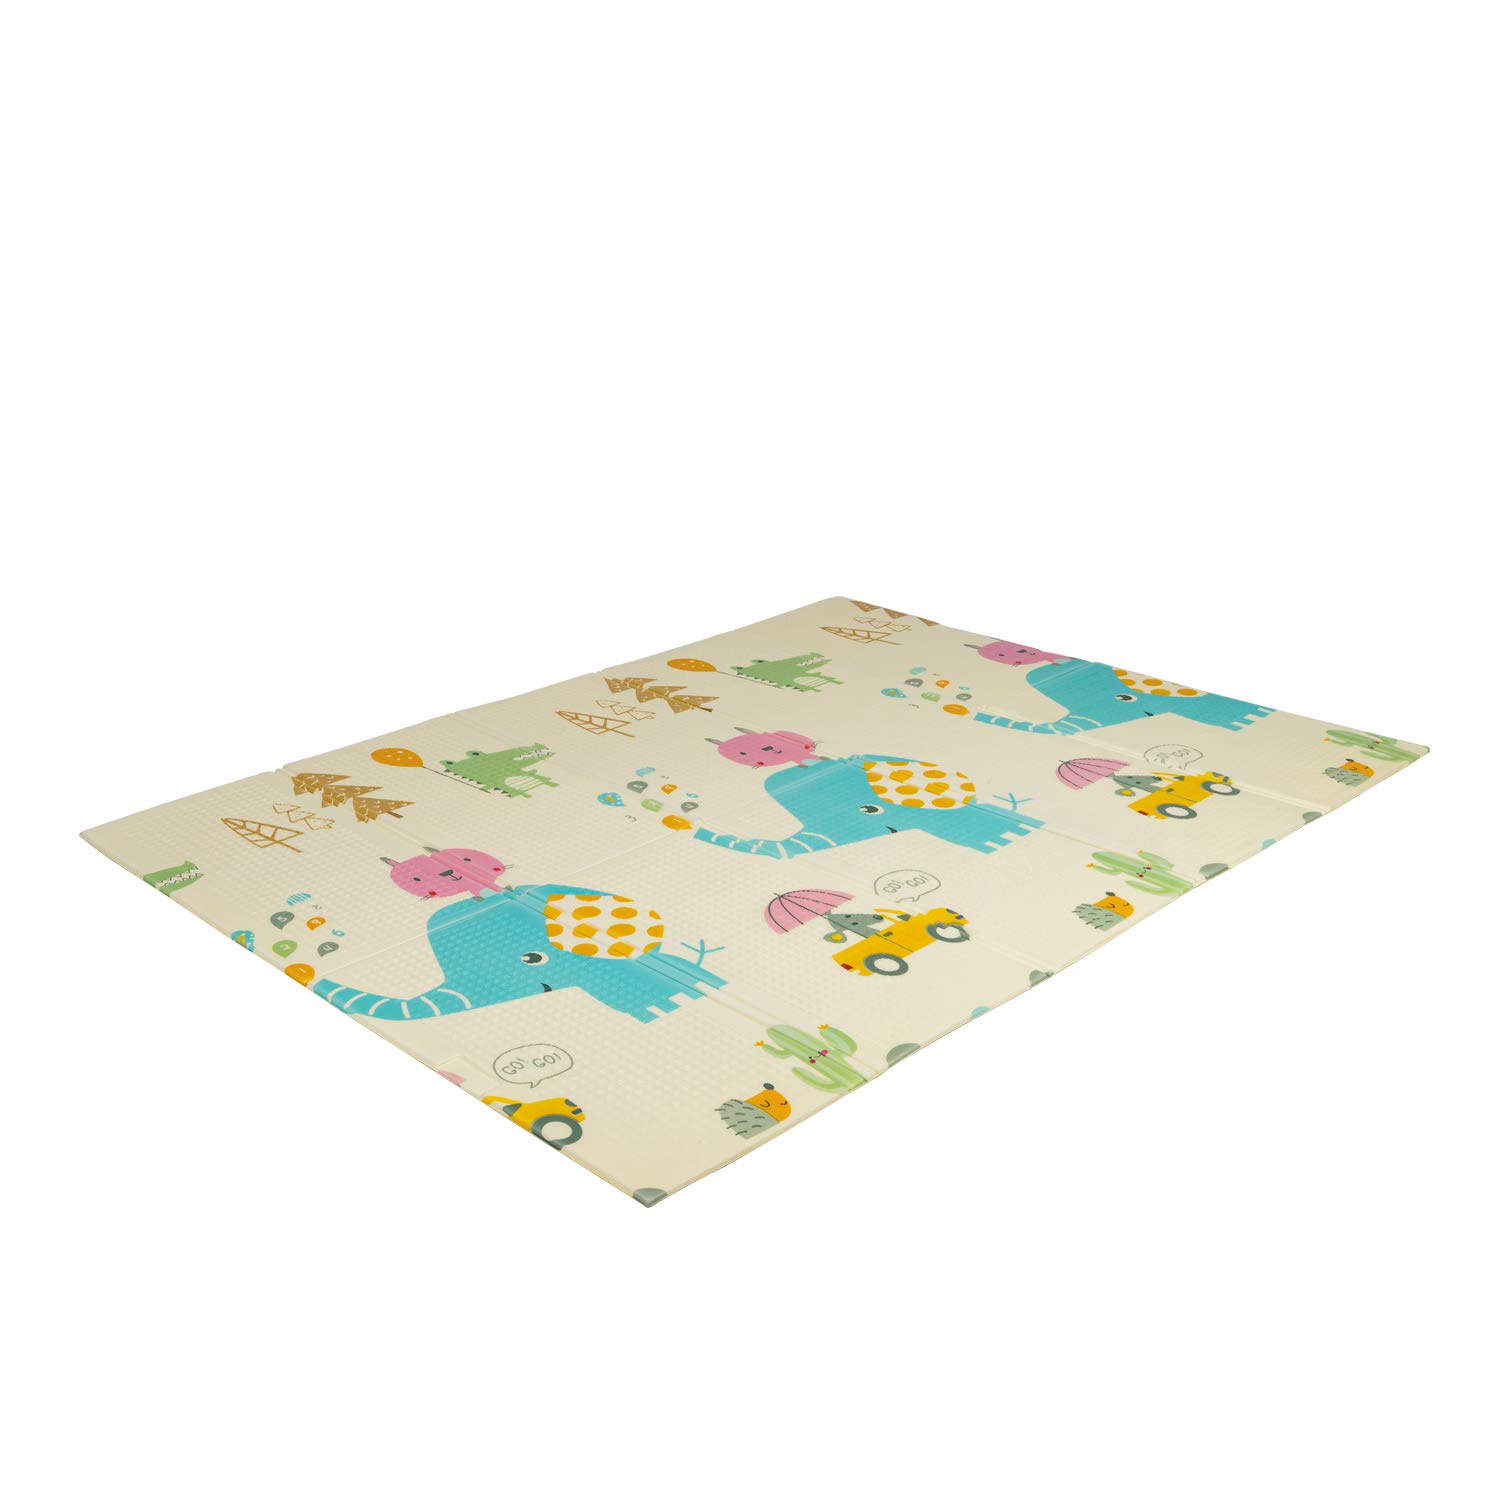 Kinbor Baby Folding Kids Play Mat Reversible XPE Foam Floor Playmat Unisex Playroom and Nursery Mat for Infants Toddlers and Kids 71 × 59 x 0.4 inch